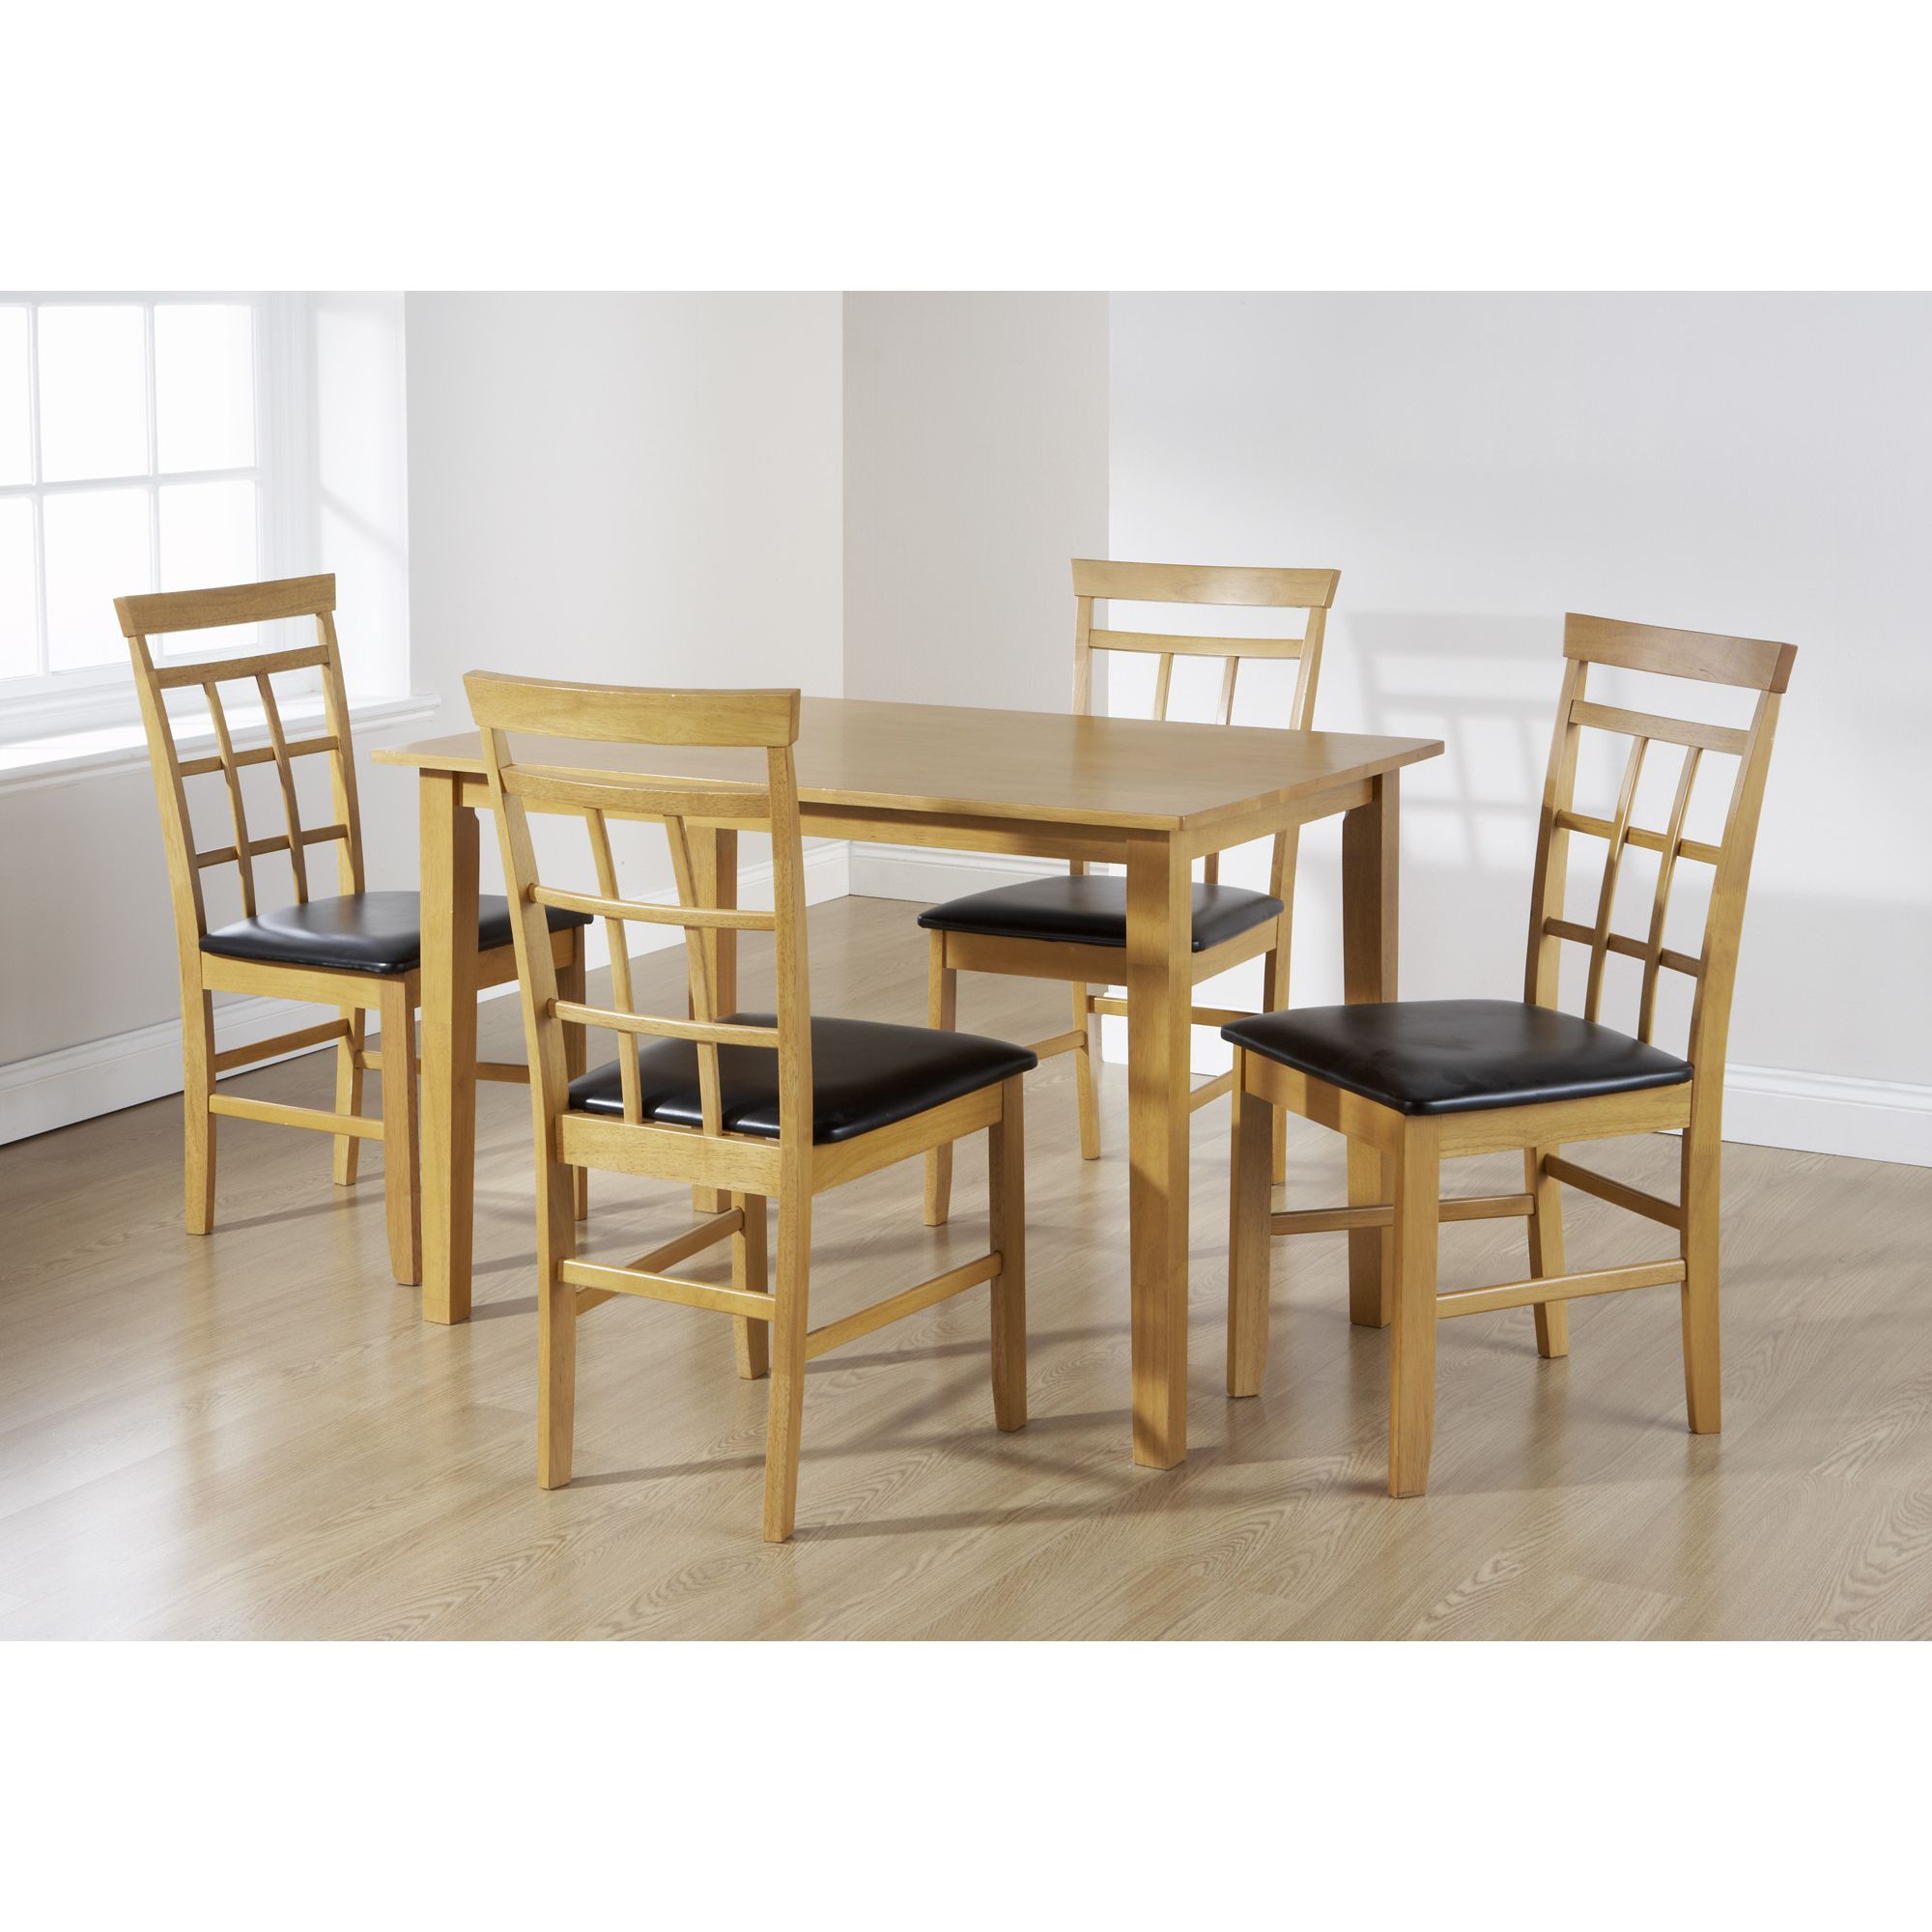 Elements Bude 5 Piece Dining Set - Oak at Tescos Direct